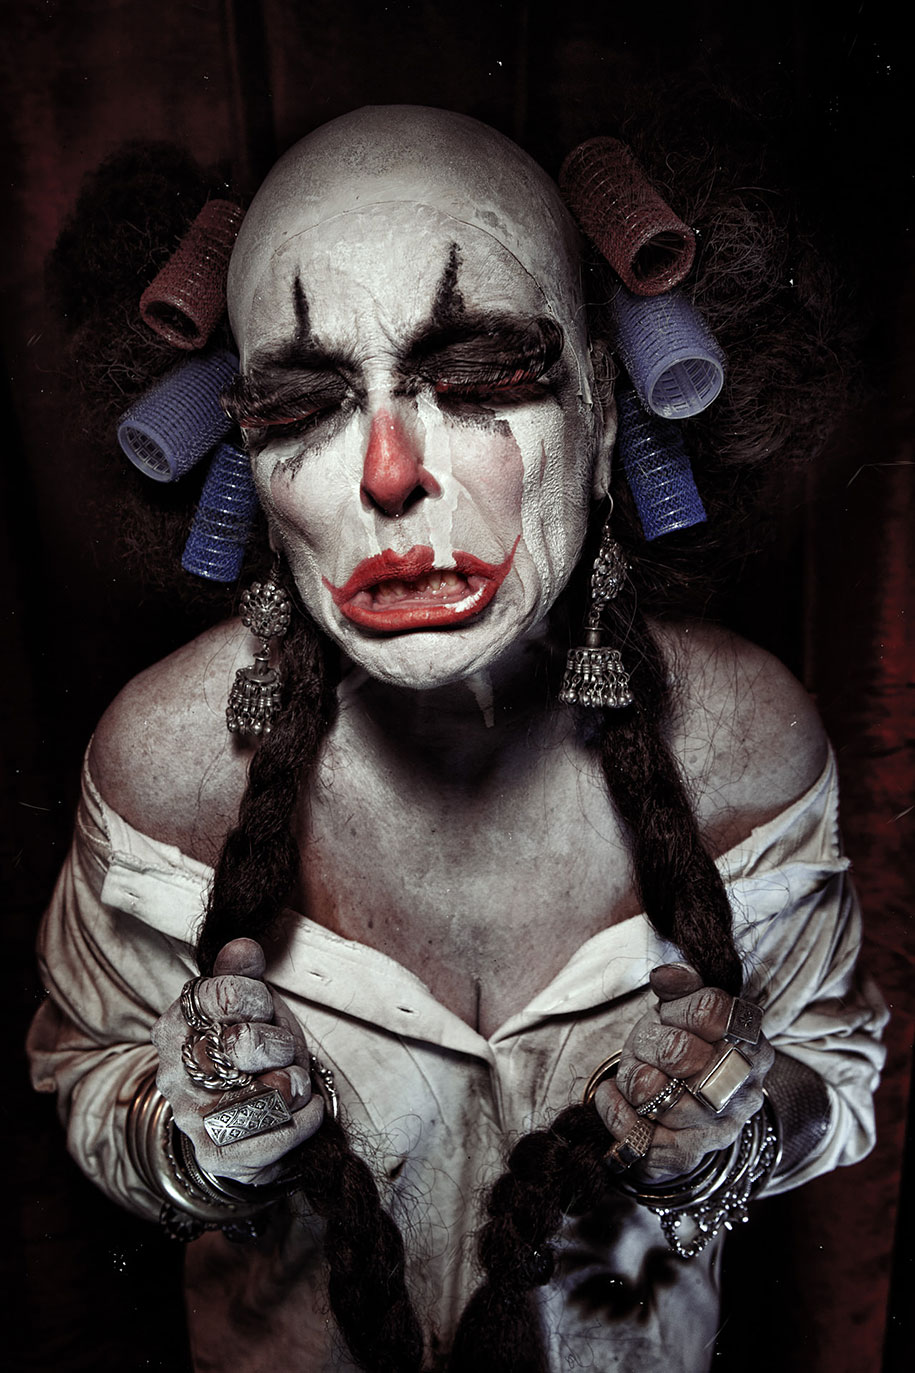 macabre-scary-clown-portraits-clownville-eolo-perfido-21